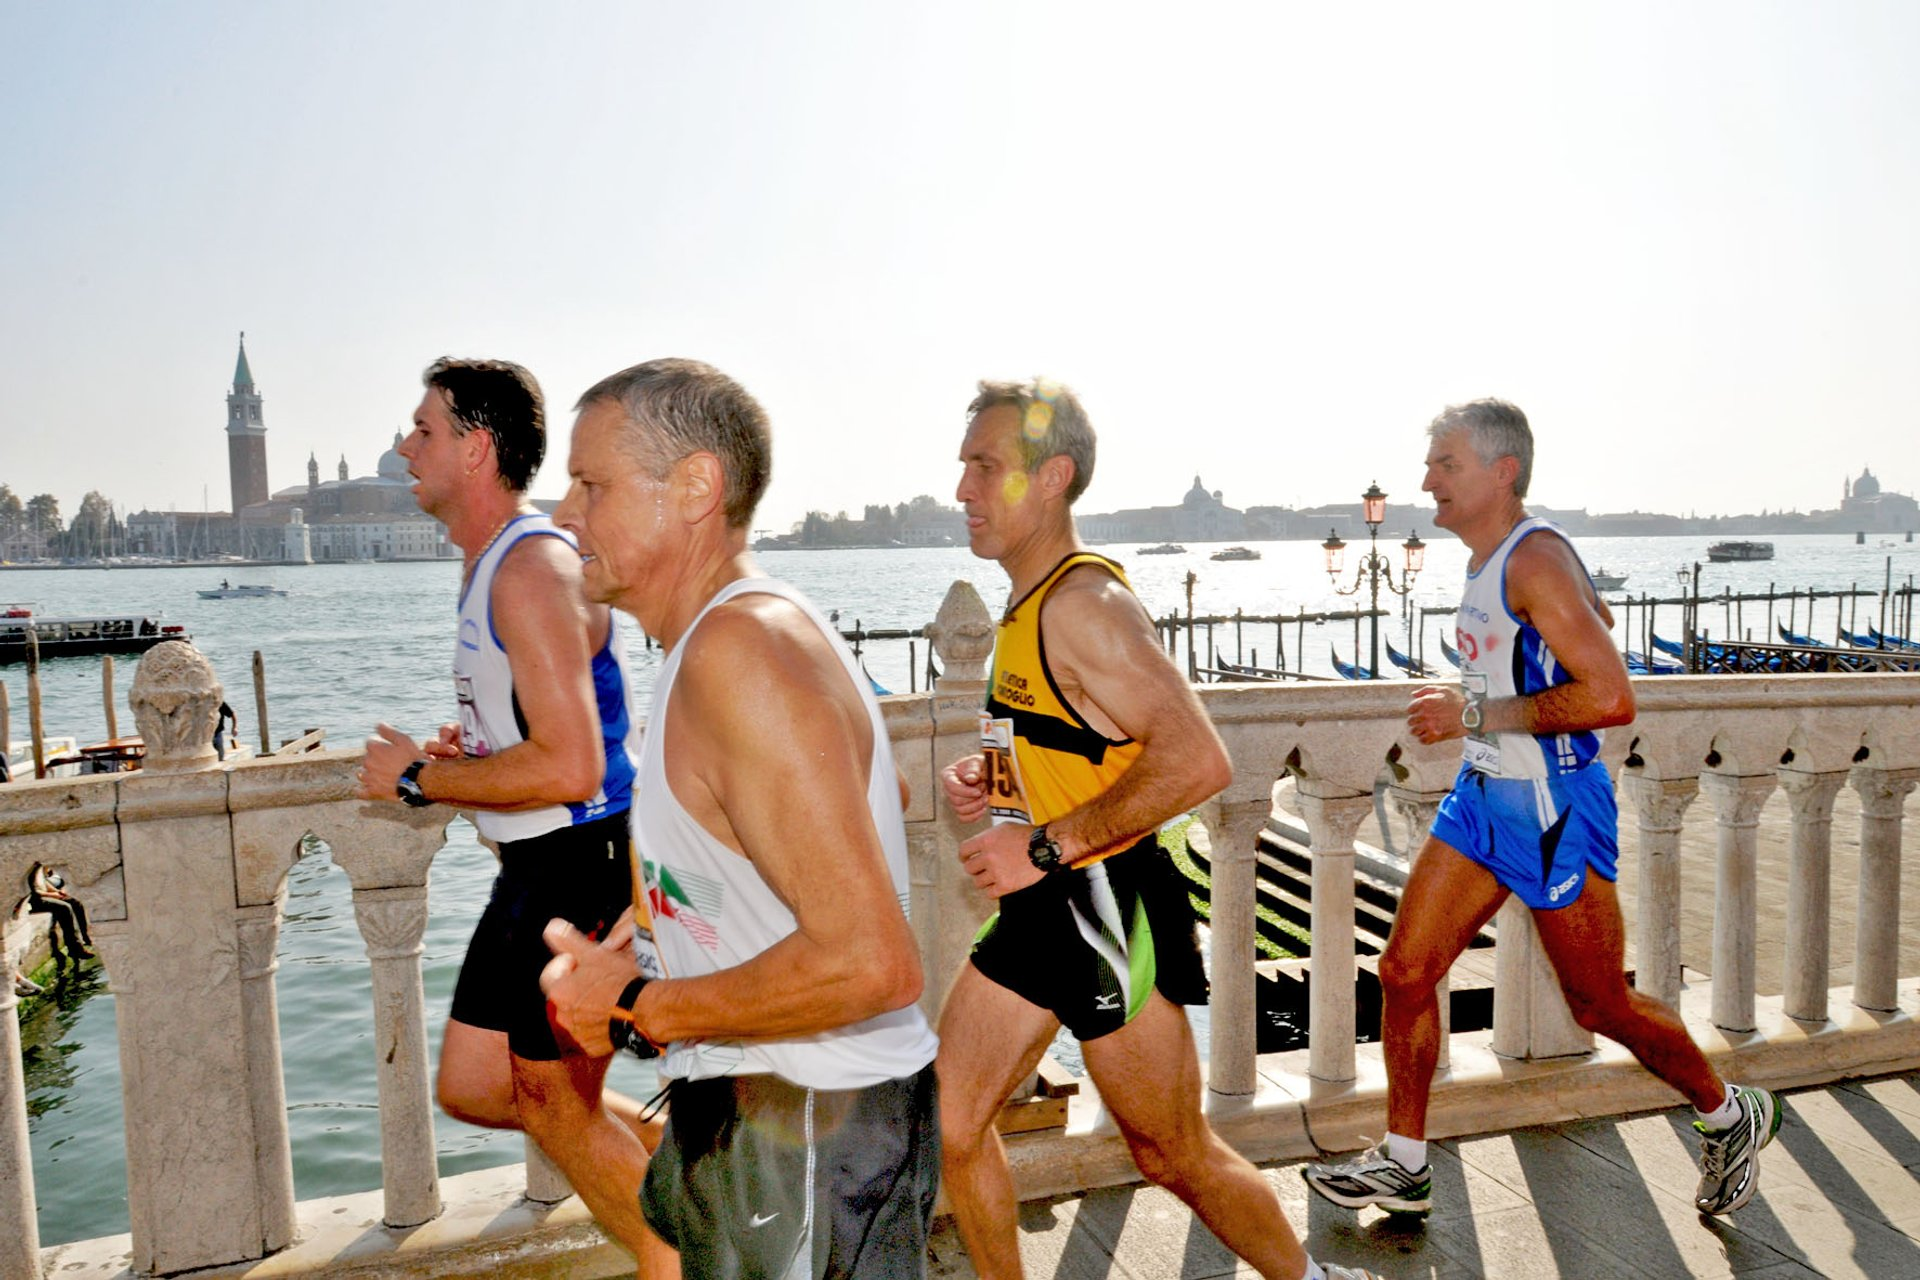 Best time for Venice Marathon (Maratona di Venezia)